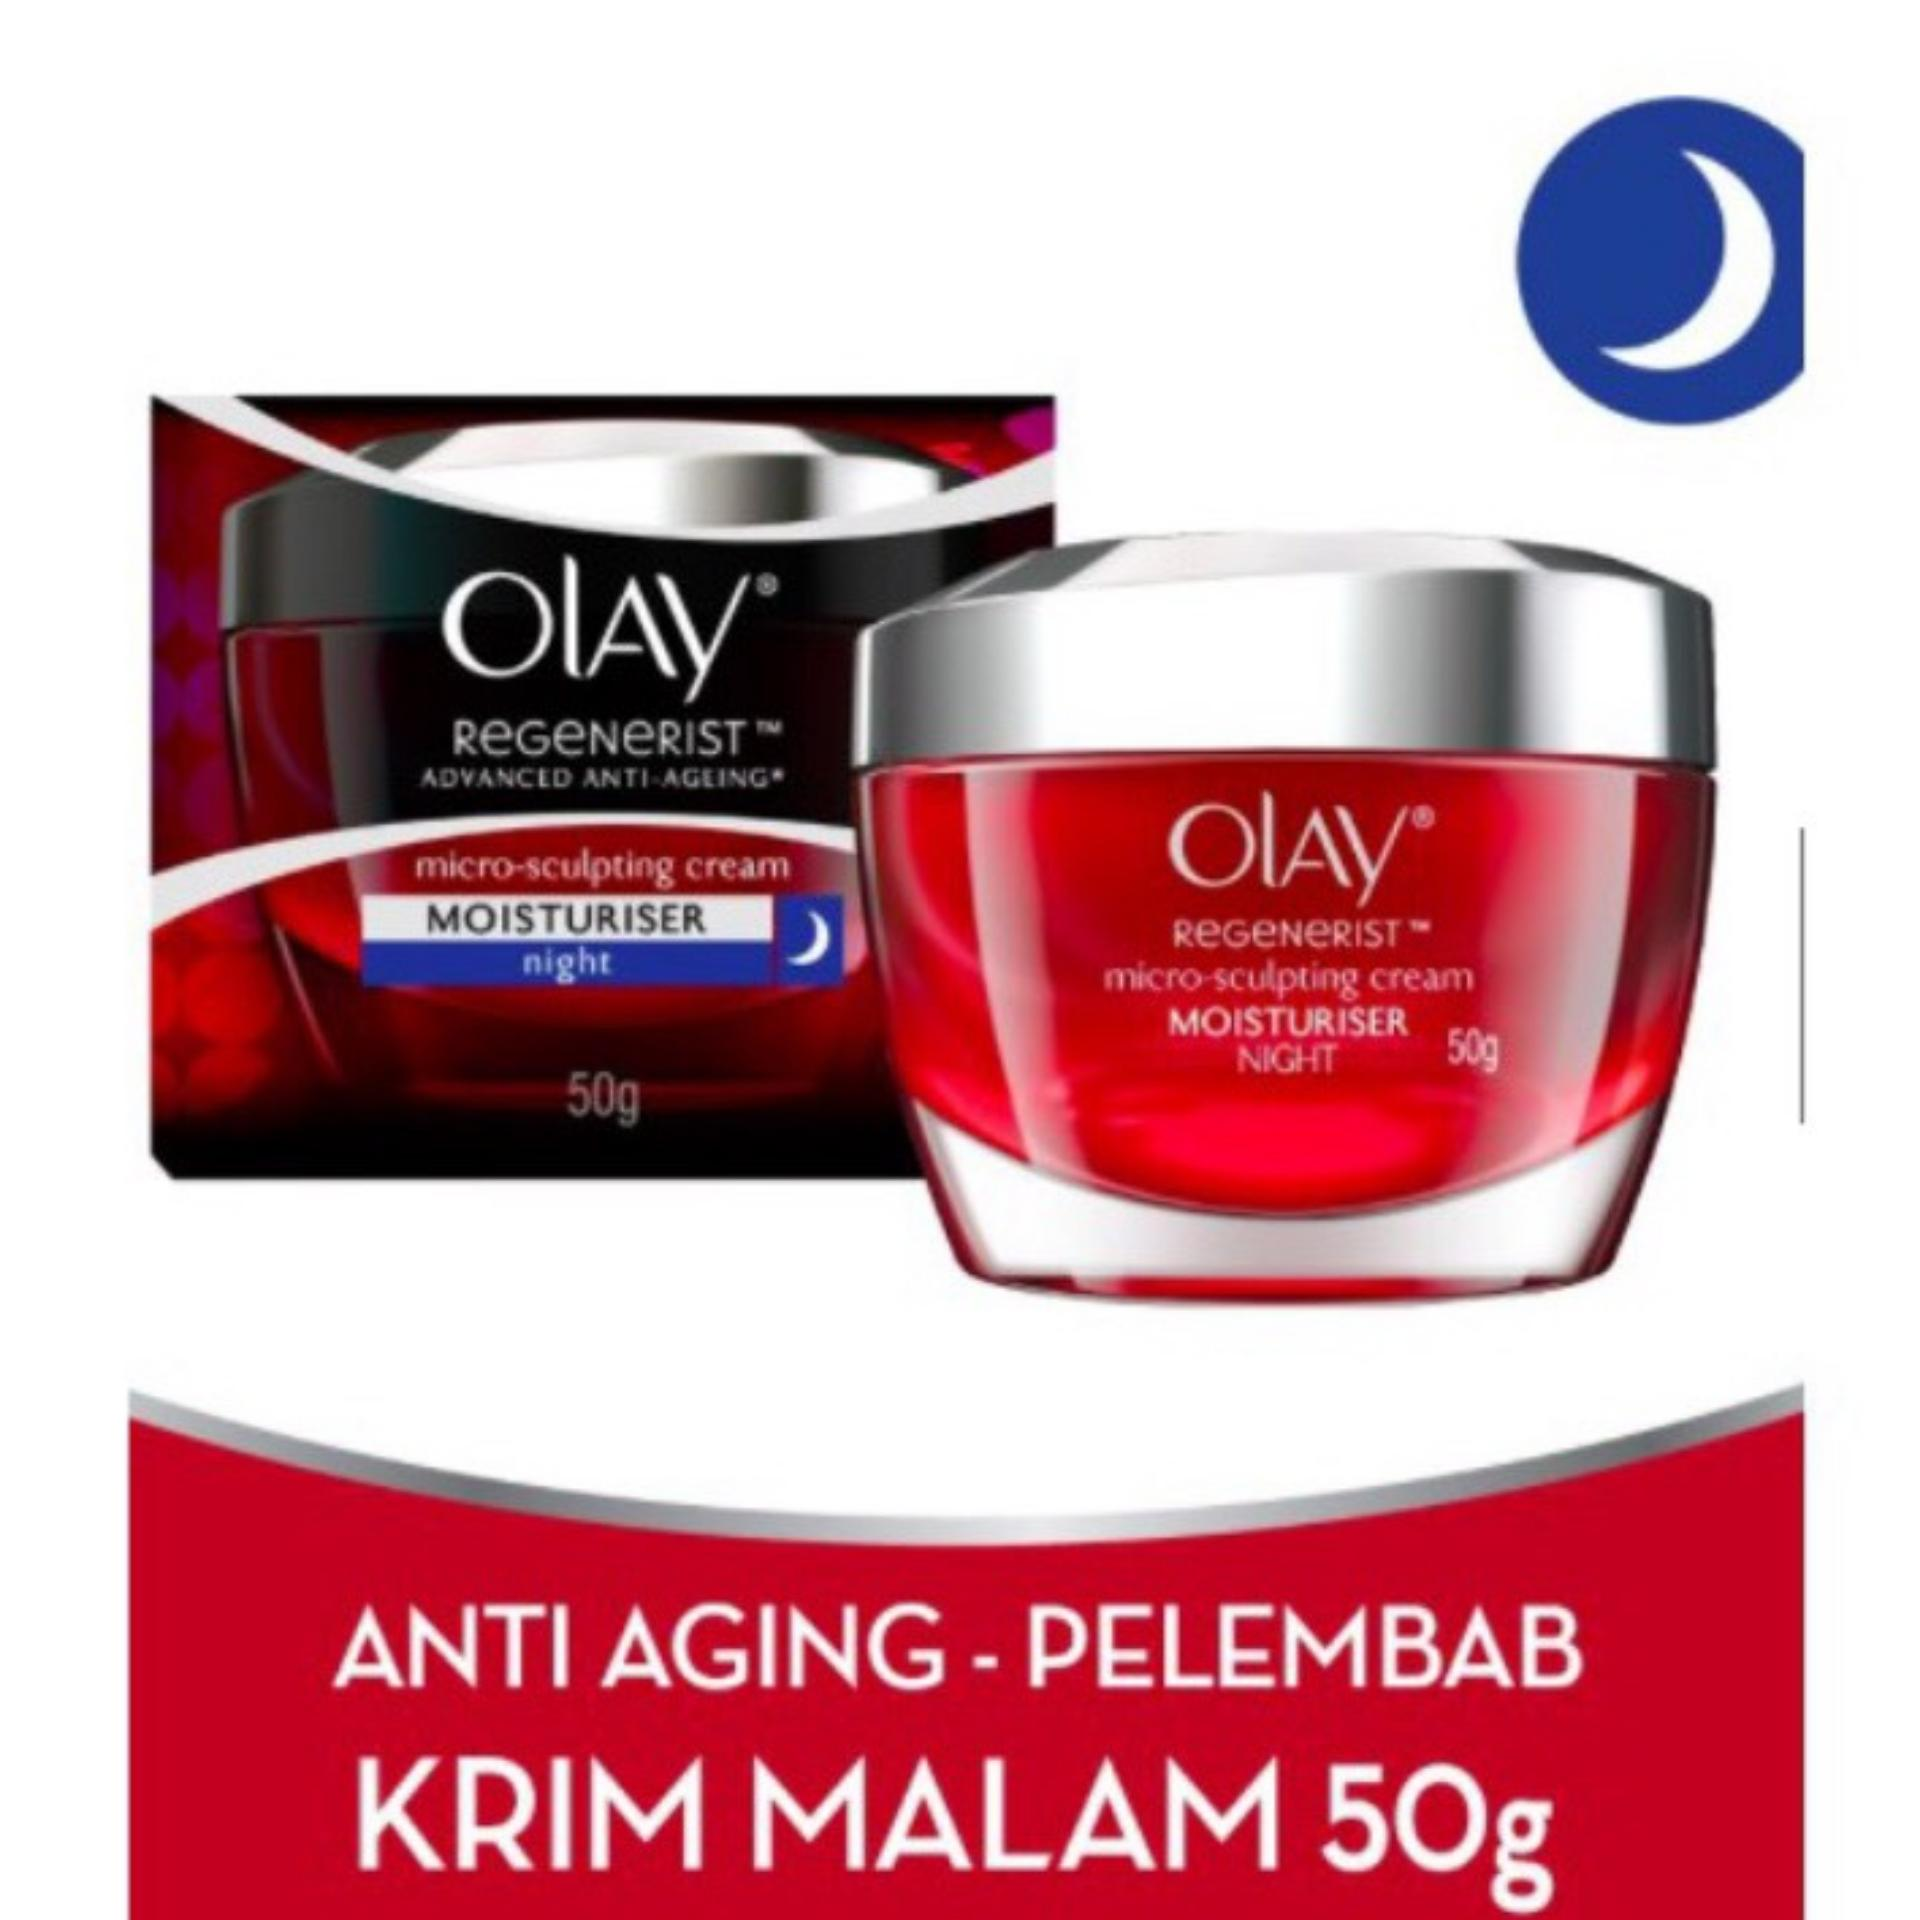 Olay Regenerist Micro Sculpting Cream Night 50Gr Original Guarantee Krim Malam Anti Aging Olay Murah Di Indonesia